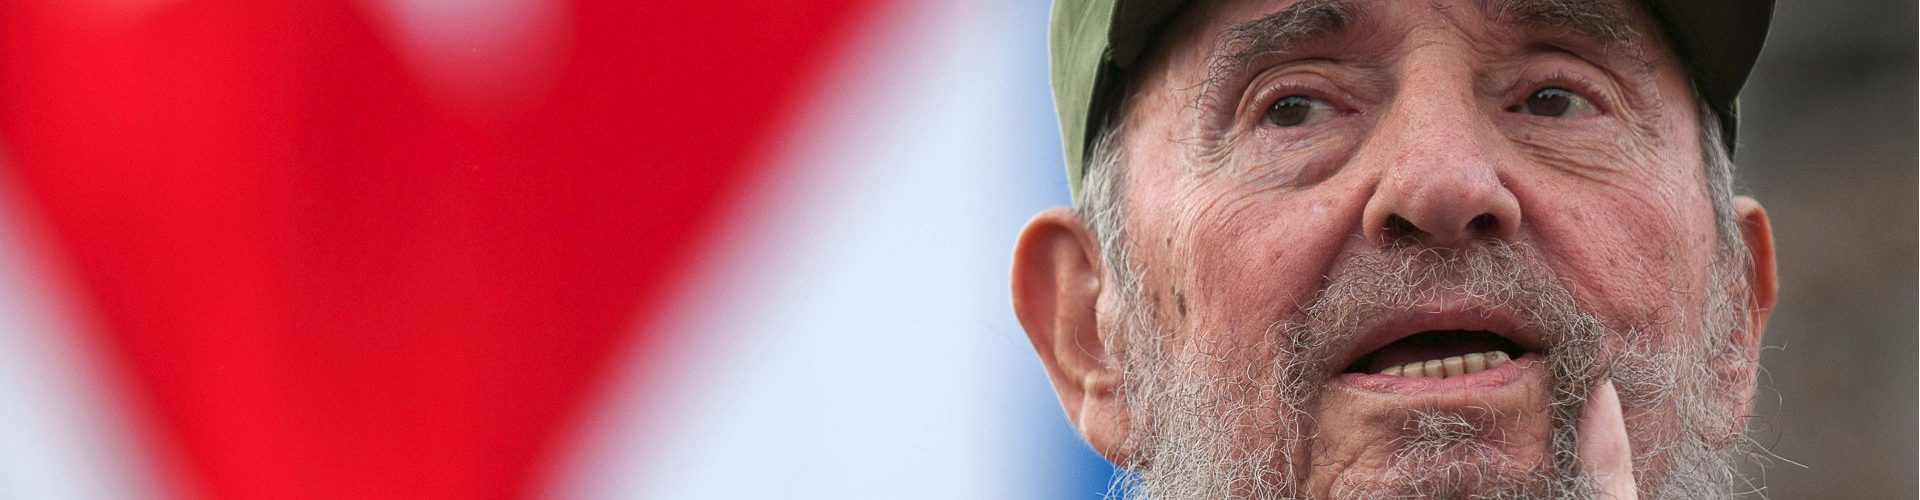 """fidel castro 500 word essay """"one sunday, letting himself go, [castro] finished off a good-sized lunch with 18 scoops of ice cream,"""" famed novelist gabriel garcia márquez wrote in his essay a personal portrait of fidel."""